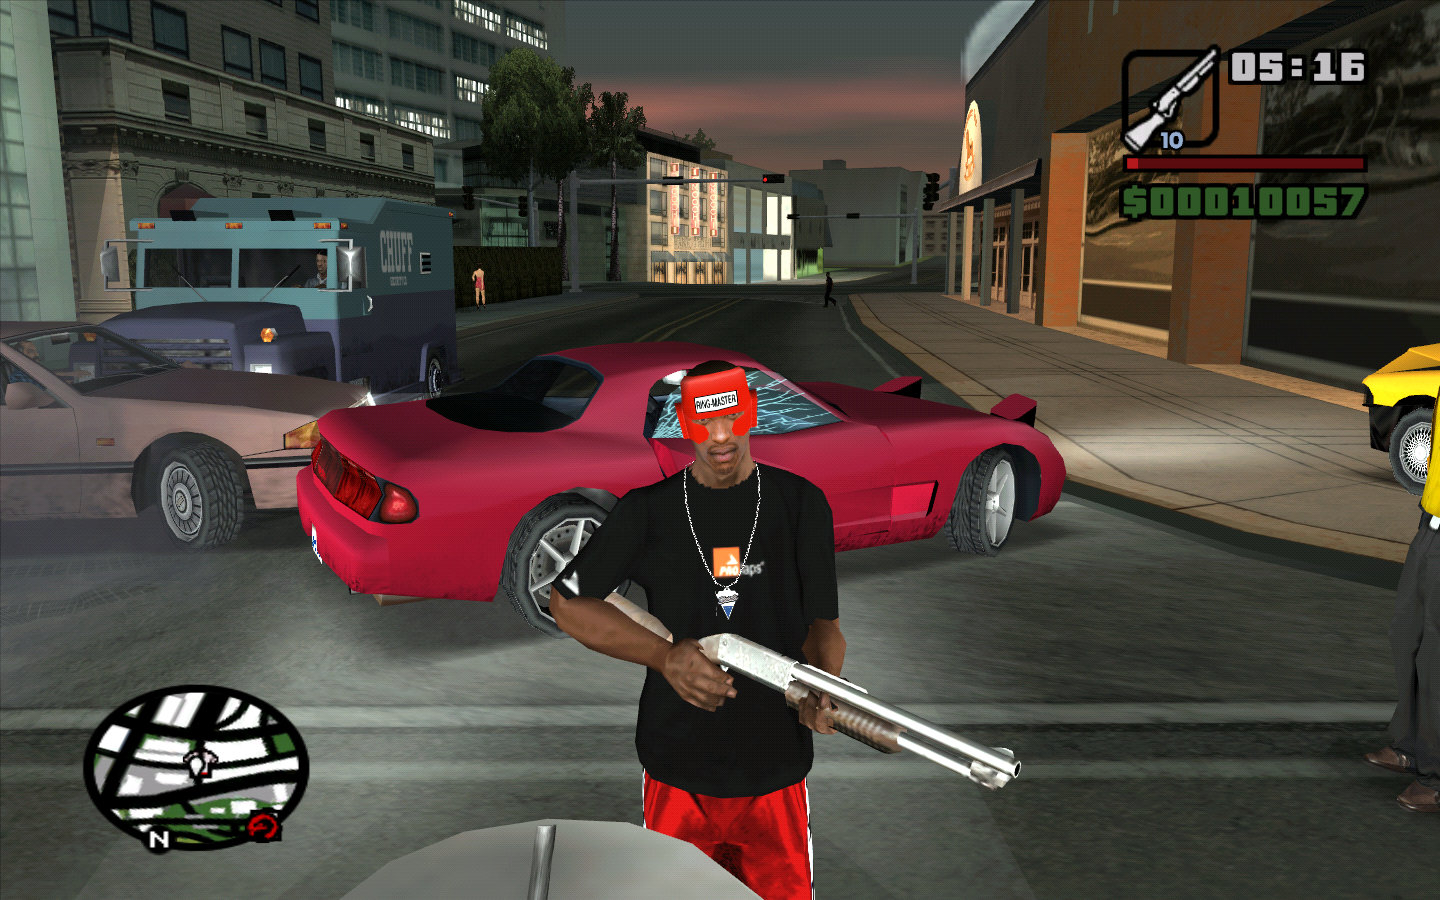 gta san andreas wallpapers 1440x900